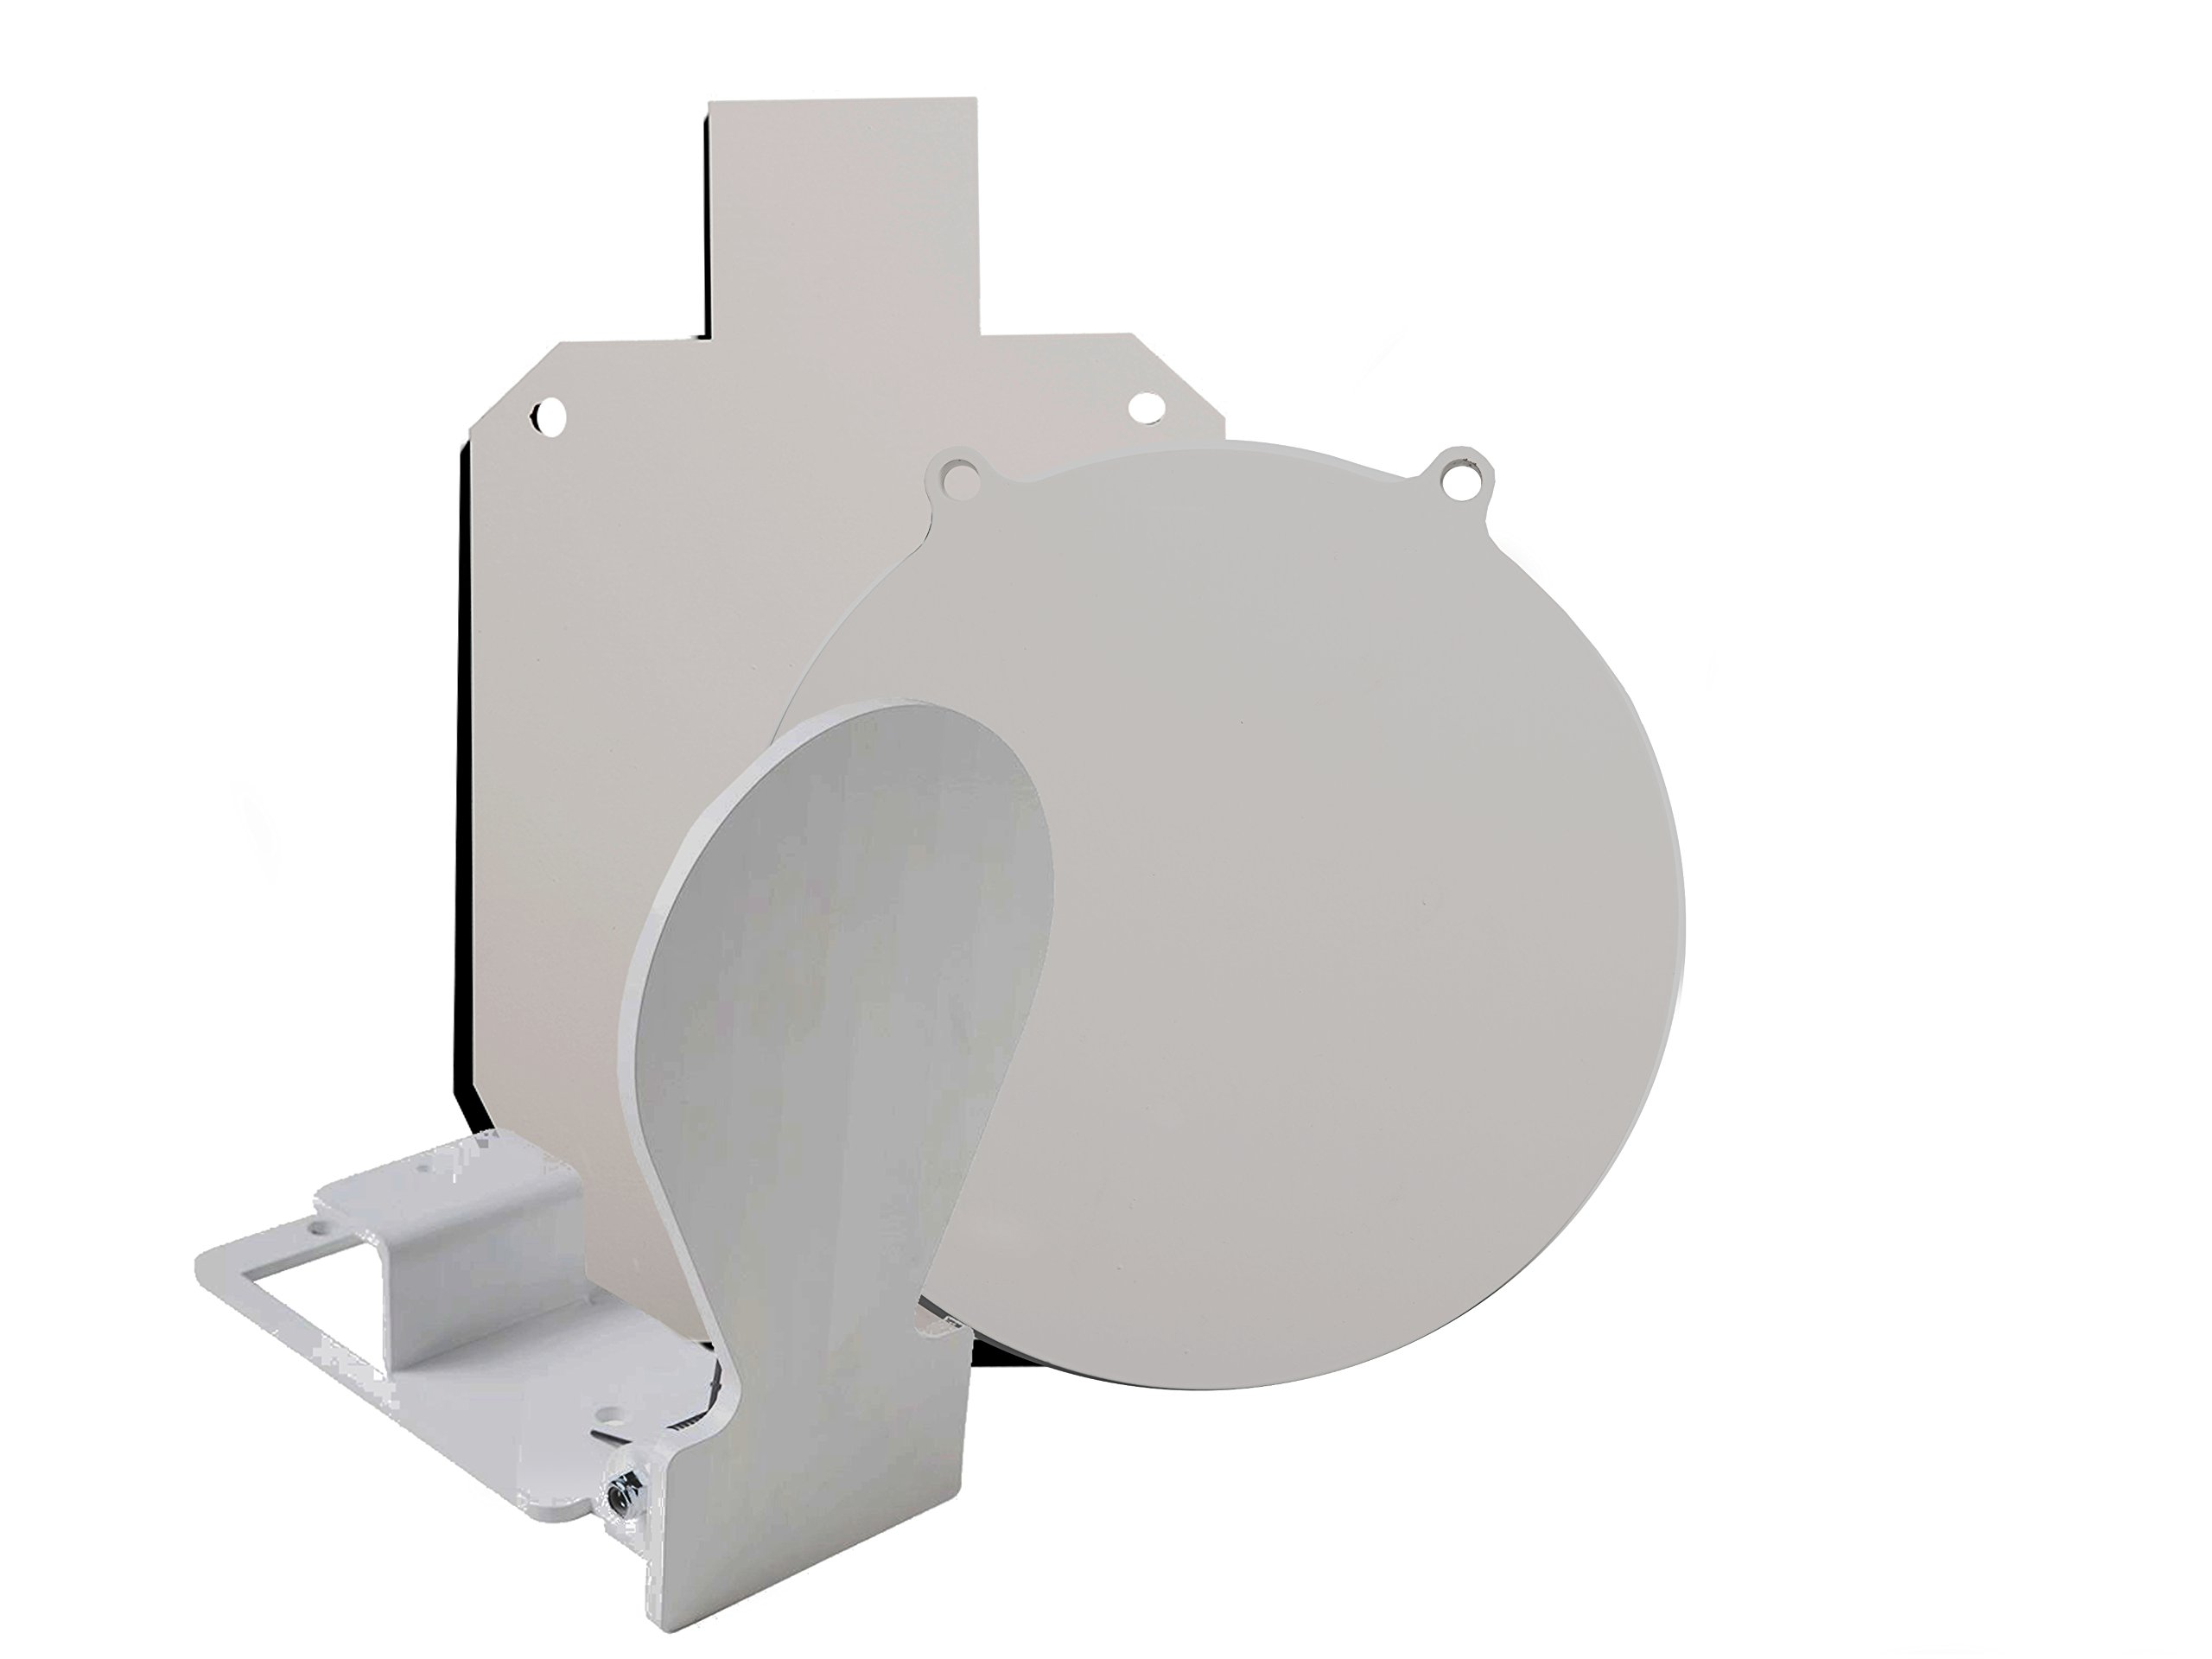 RMP Gong Swing Target Kit - 1 10'' White Gong, 1 15-1/8 X 9-1/4 White Silhouette, 1 Spring Load Target by RMP (Image #1)